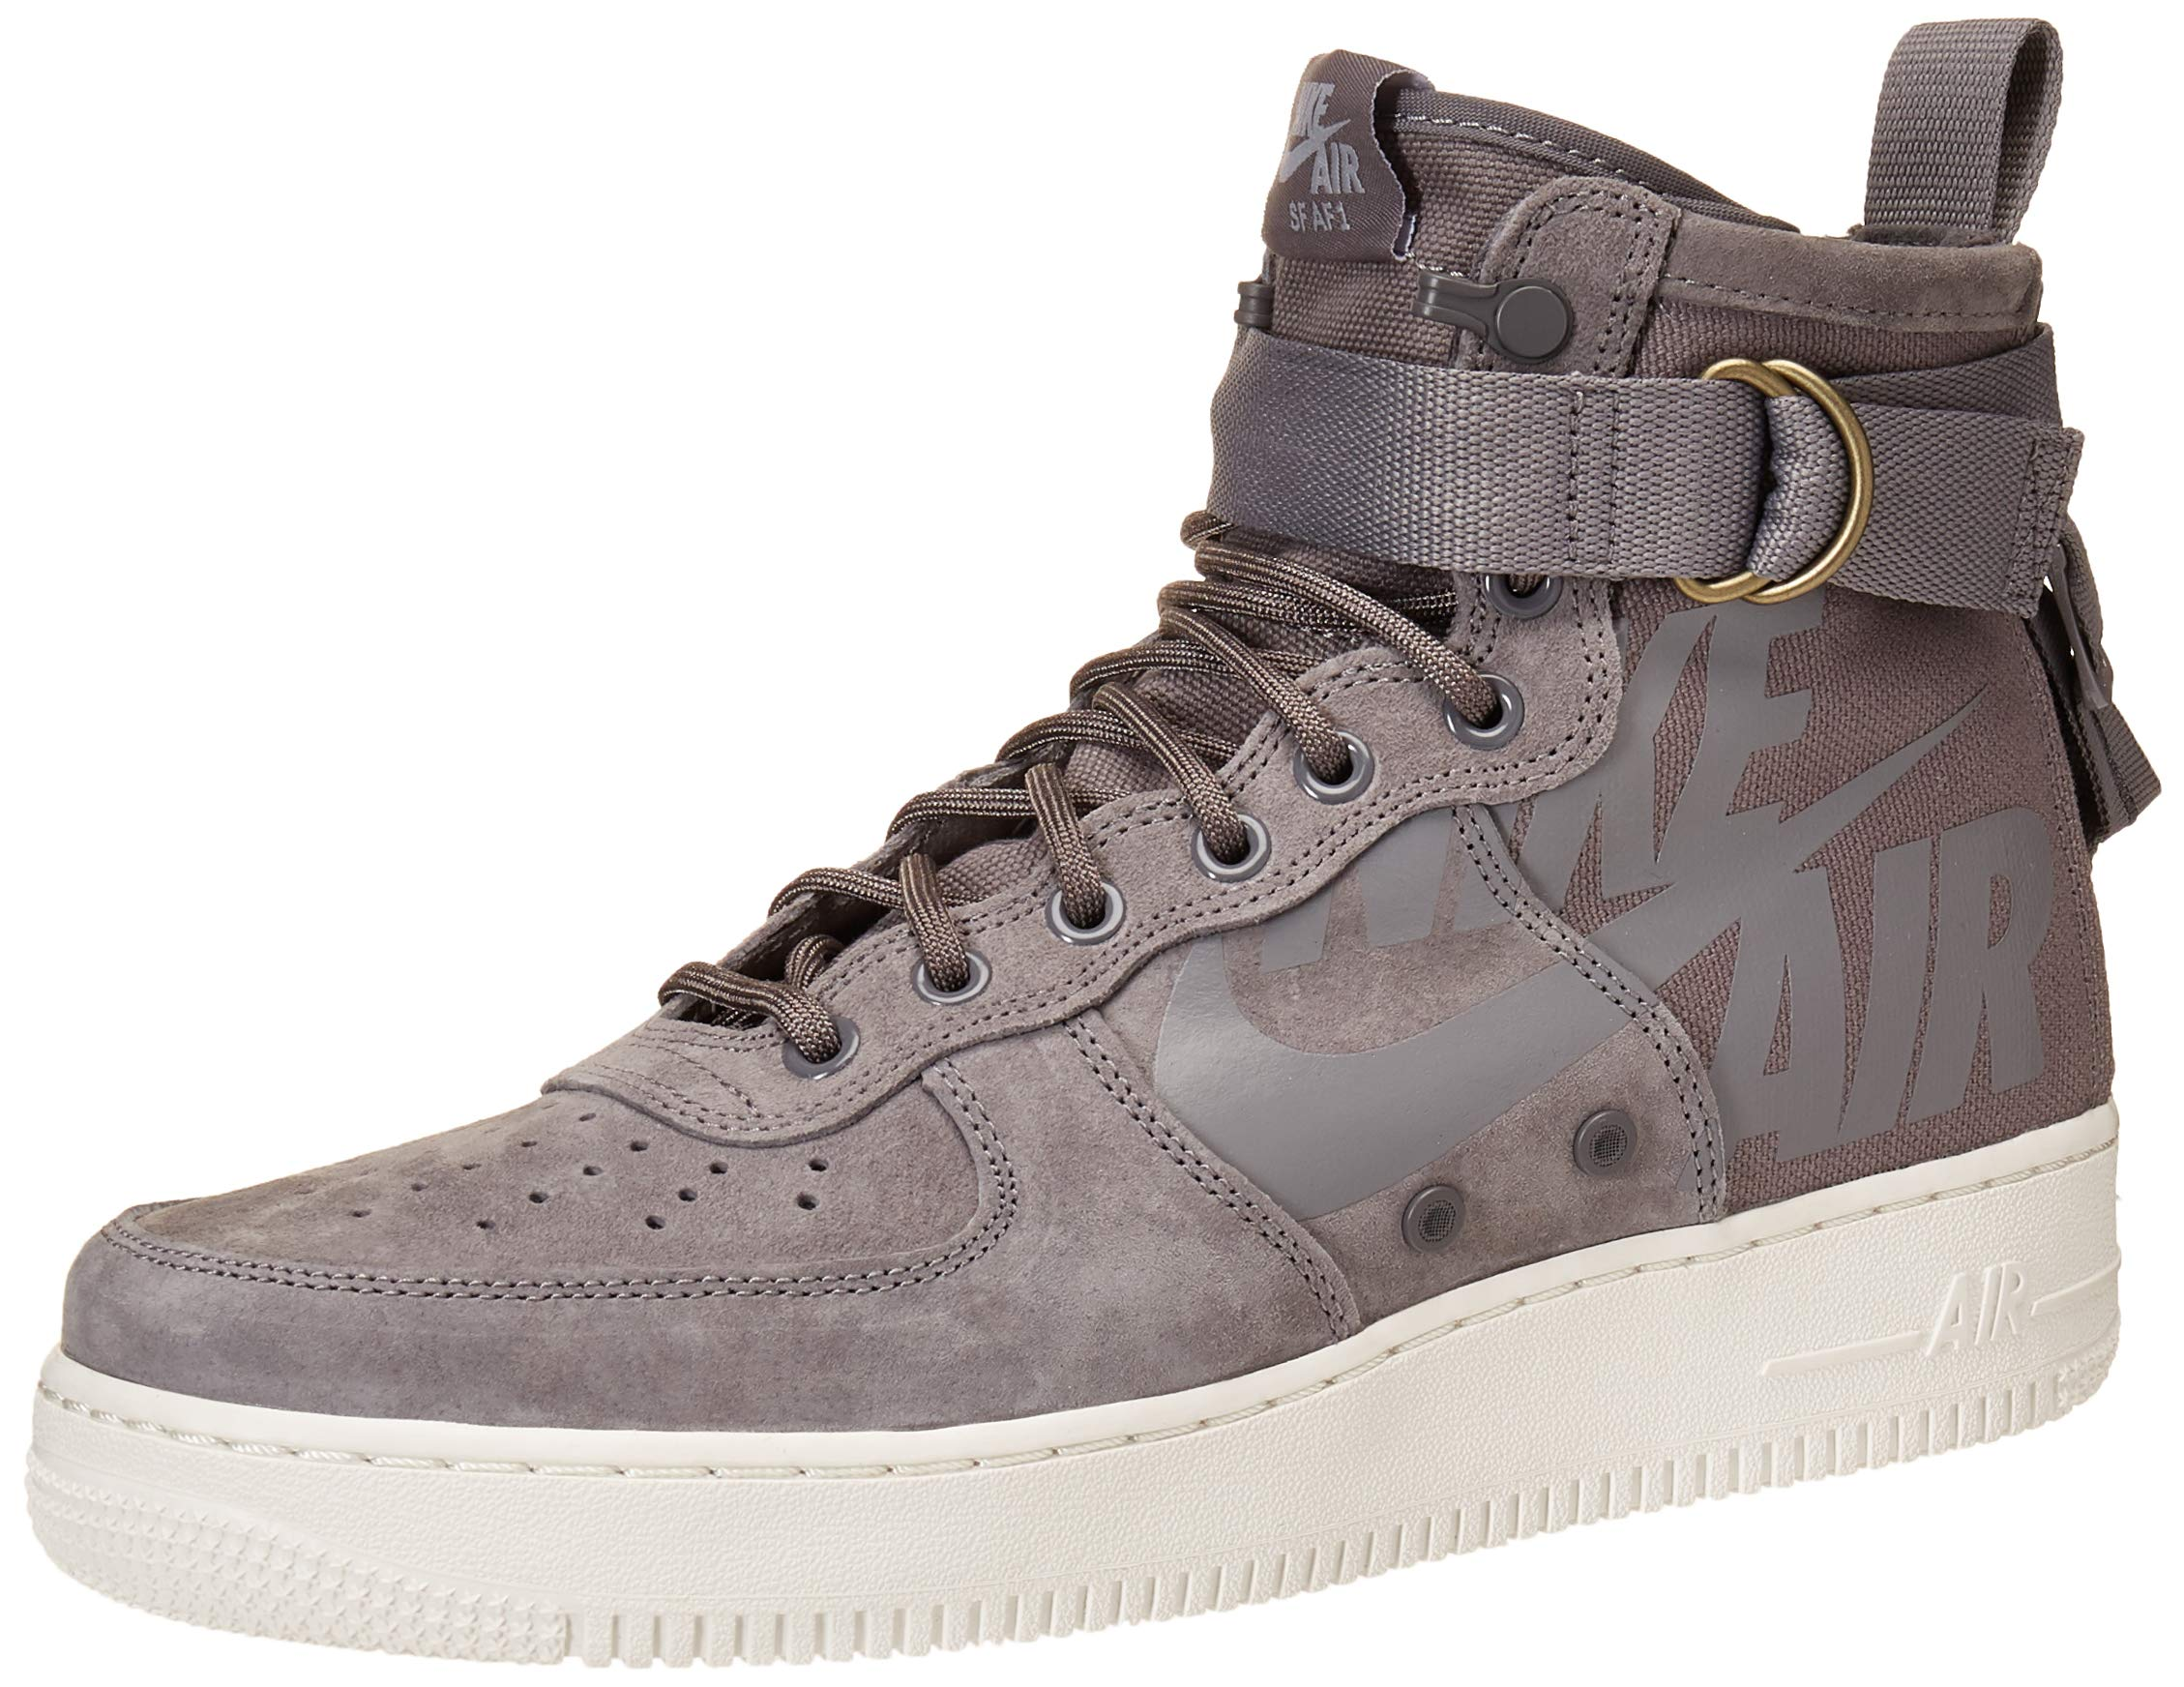 separation shoes 2e5e3 055d1 Nike Men's SF AF1 Mid Gunsmoke 917753-007 (Size: 11.5)